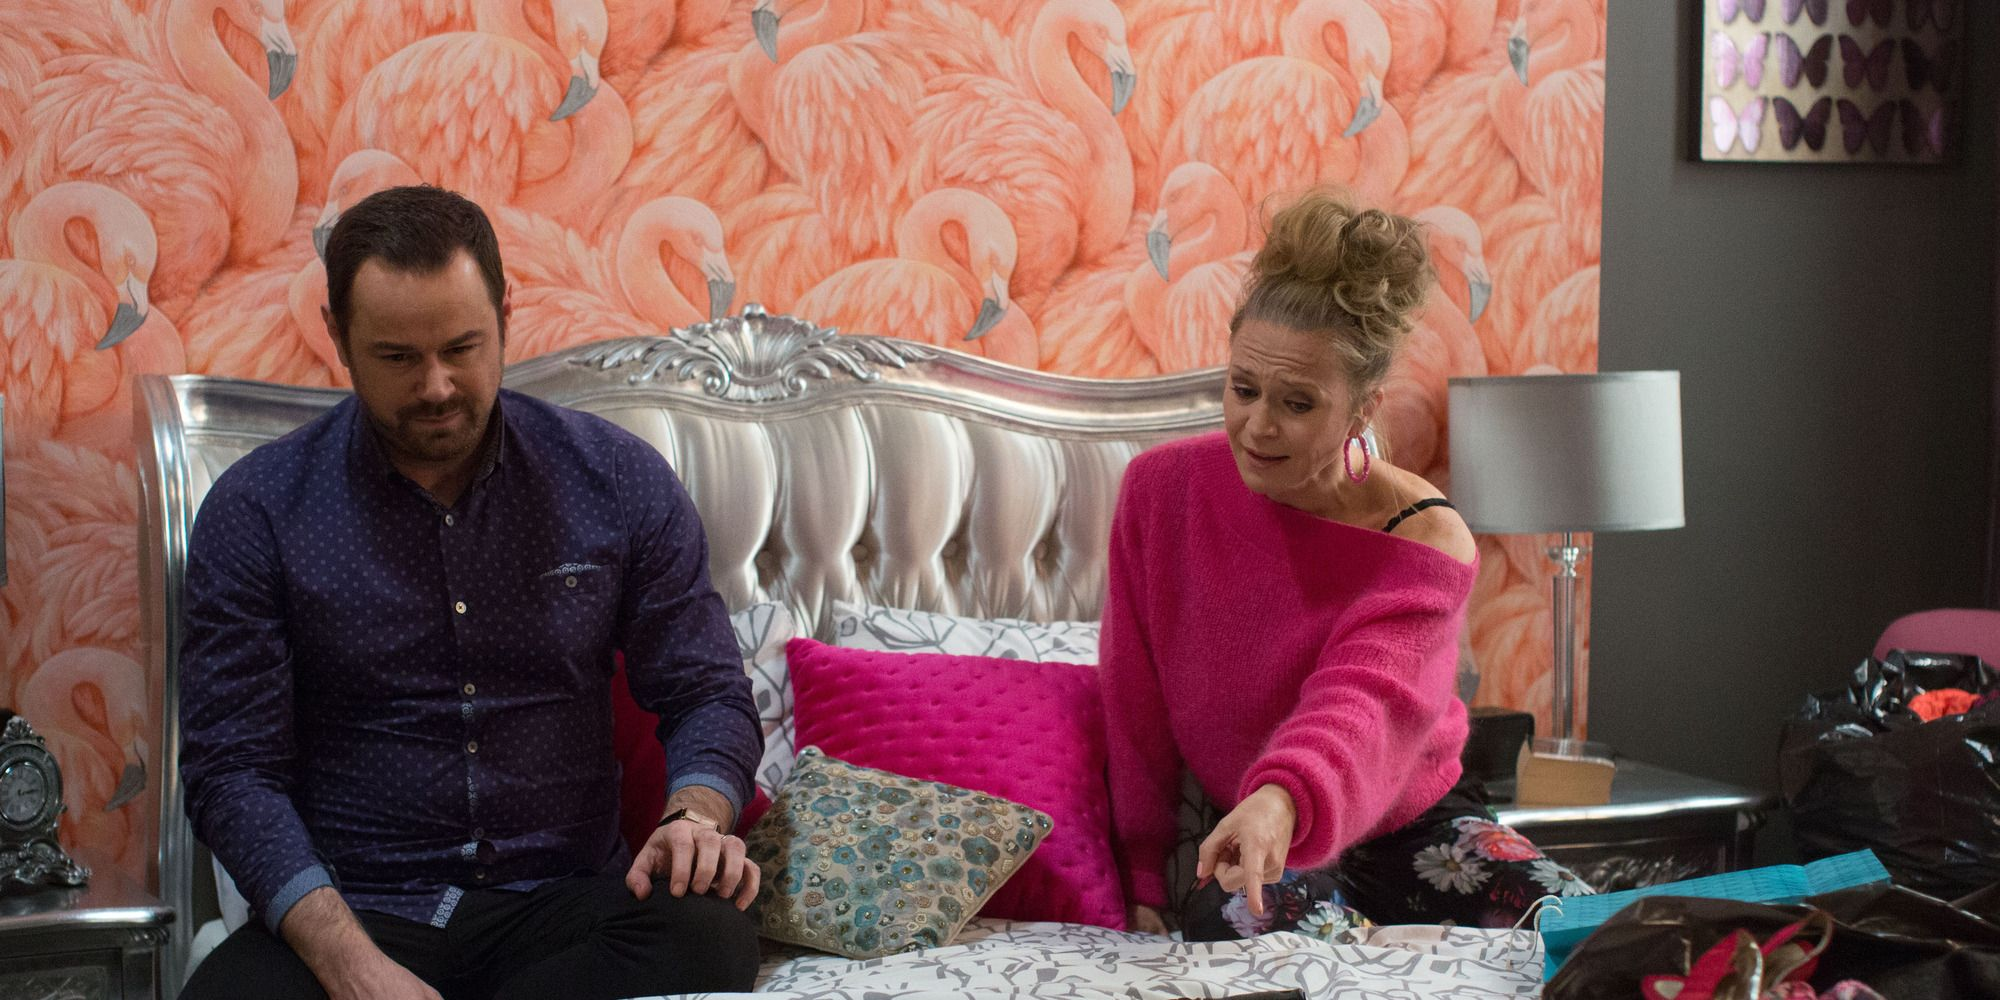 Mick and Linda Carter argue over the gun in EastEnders